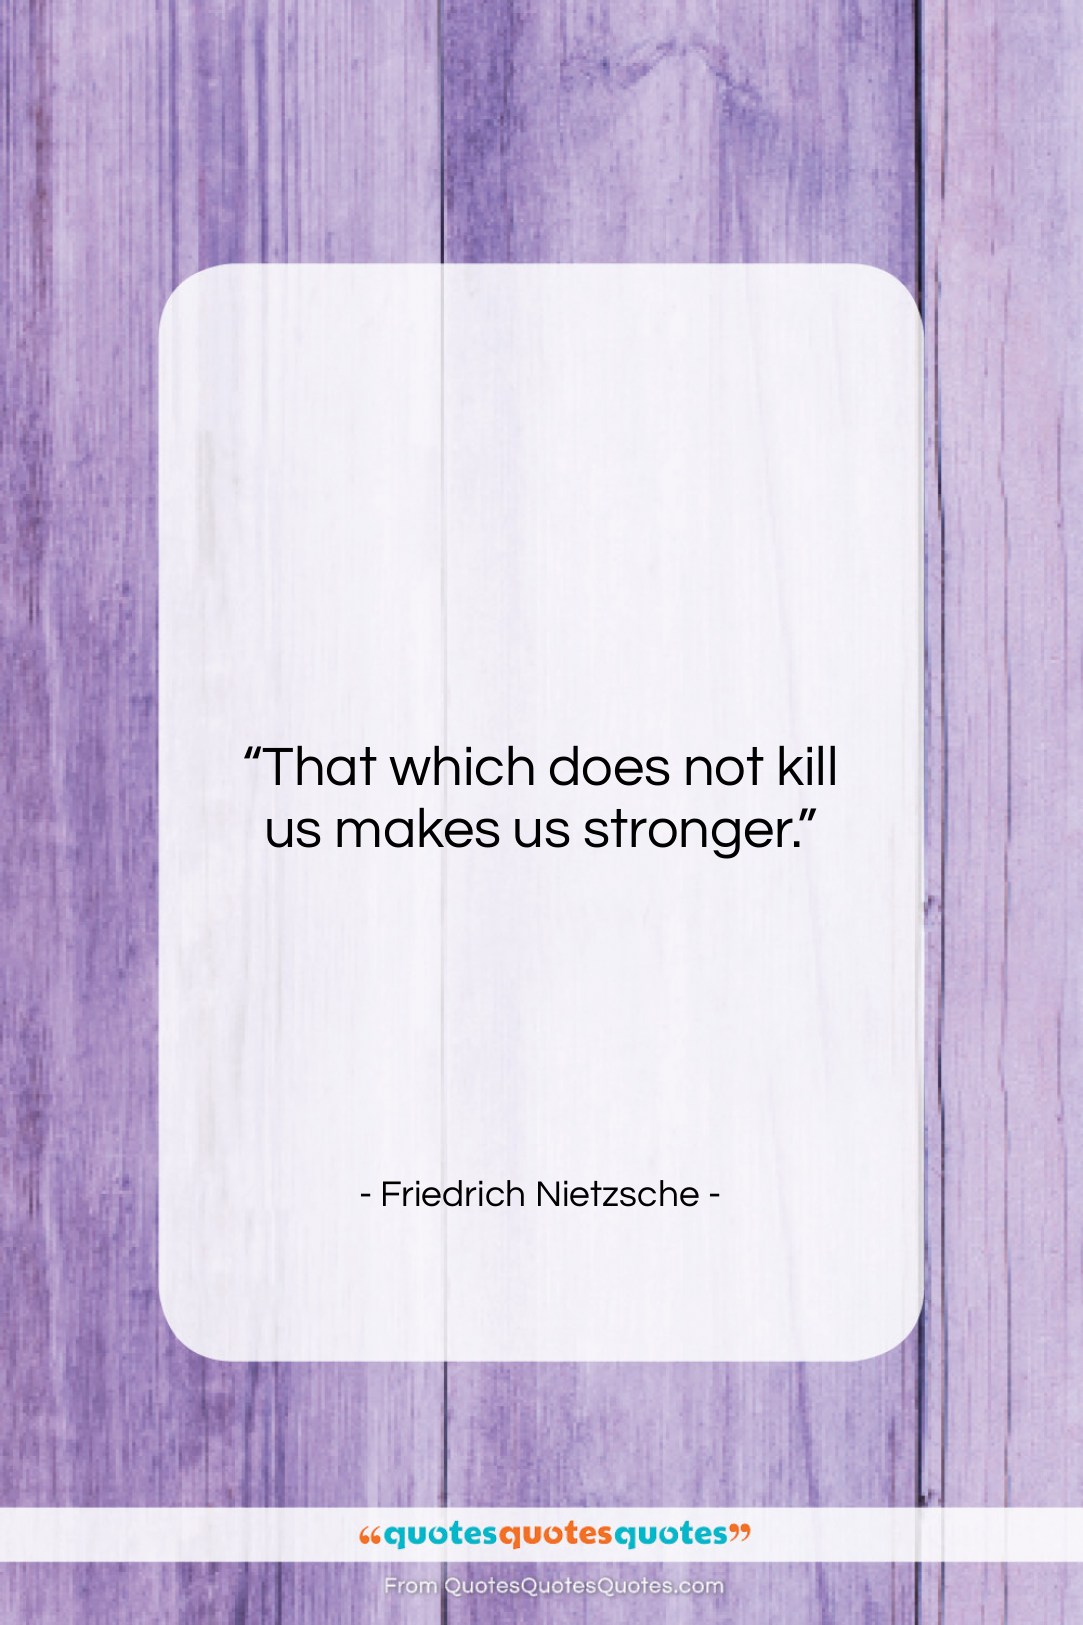 """Friedrich Nietzsche quote: """"That which does not kill us makes…""""- at QuotesQuotesQuotes.com"""